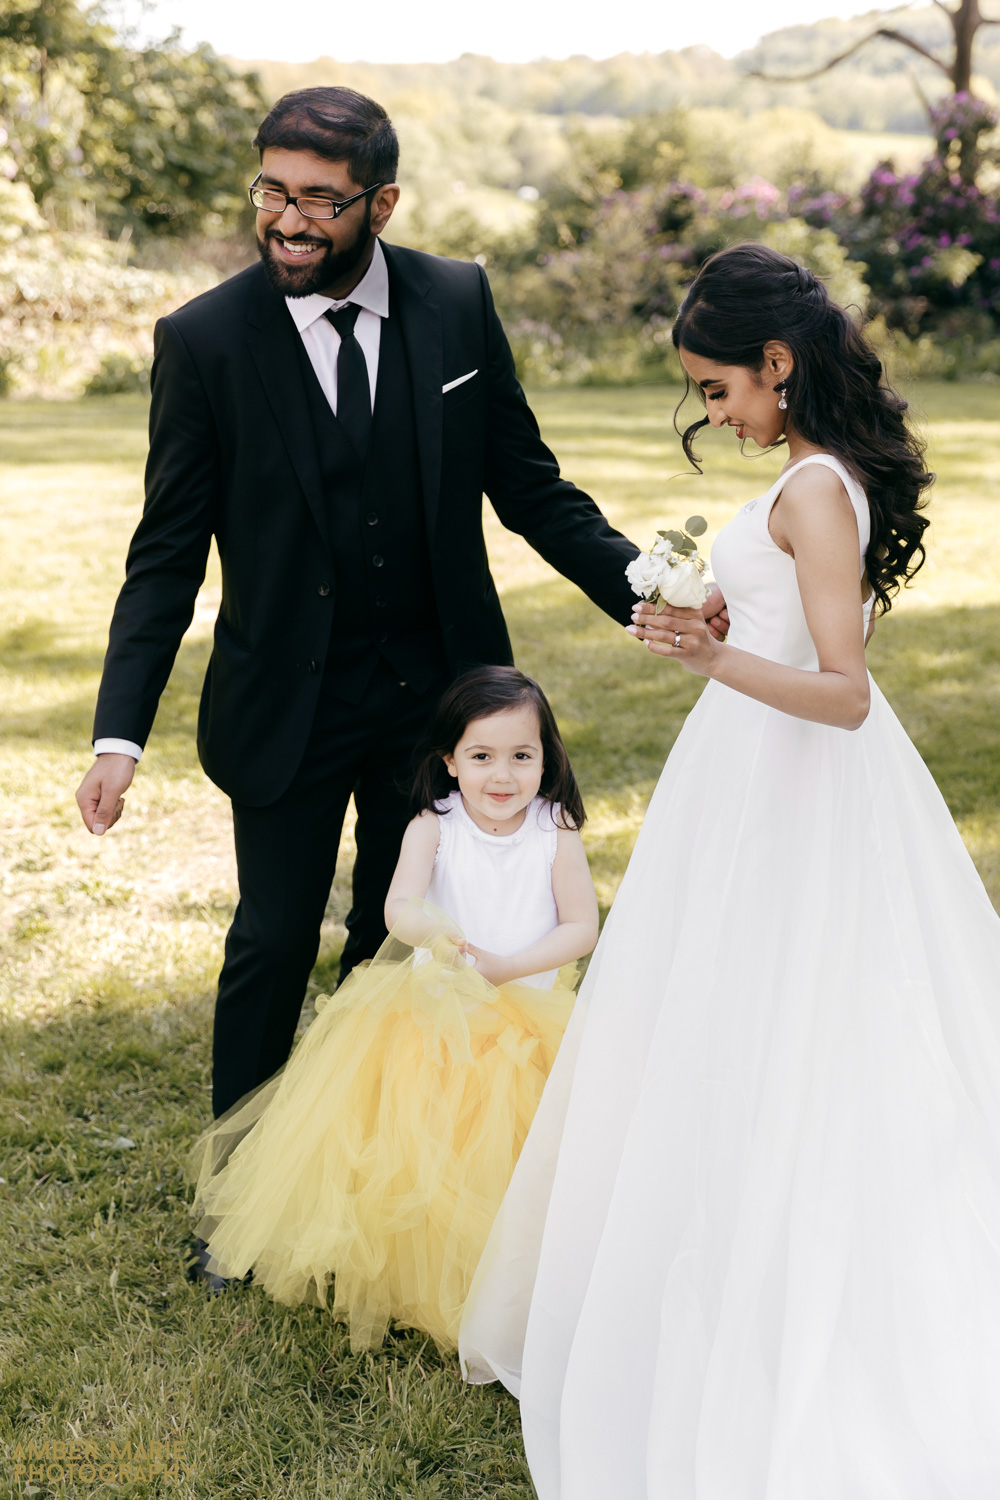 Candid wedding photo of bride and groom with flower girl in yellow